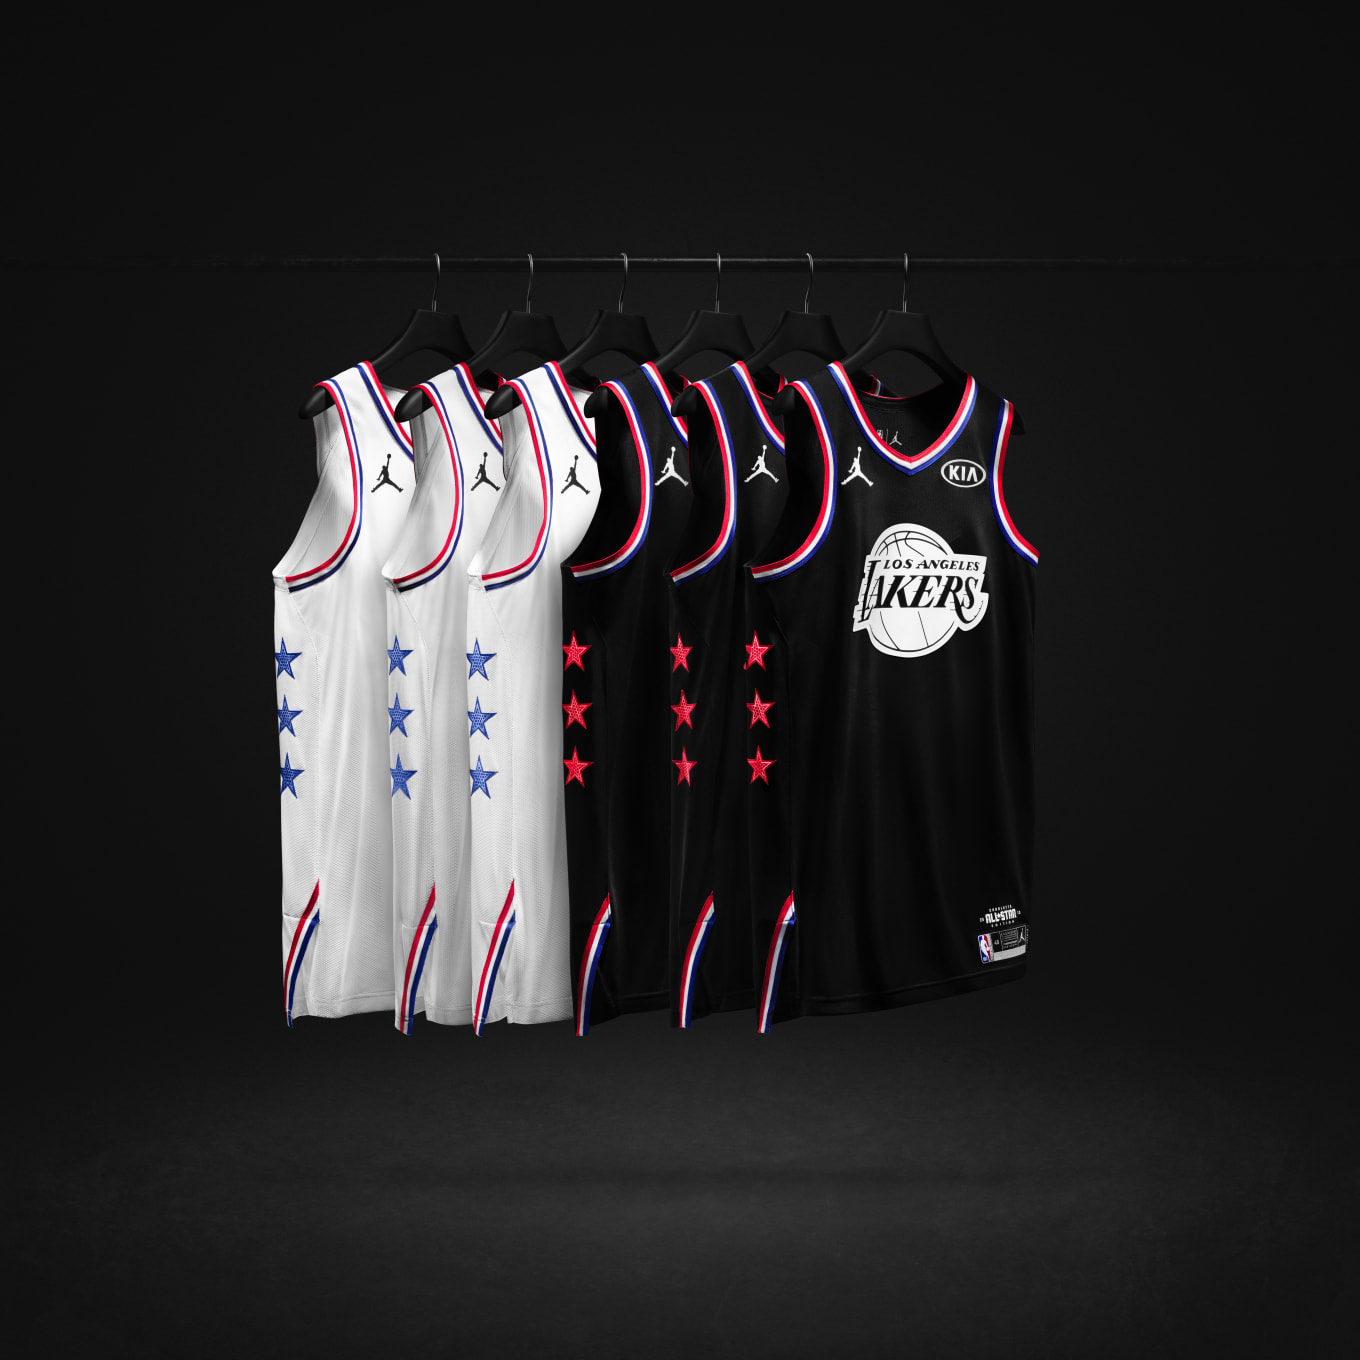 279ab36489cd Jordan Brand Unveils Uniforms for the 2019 NBA All-Star Game